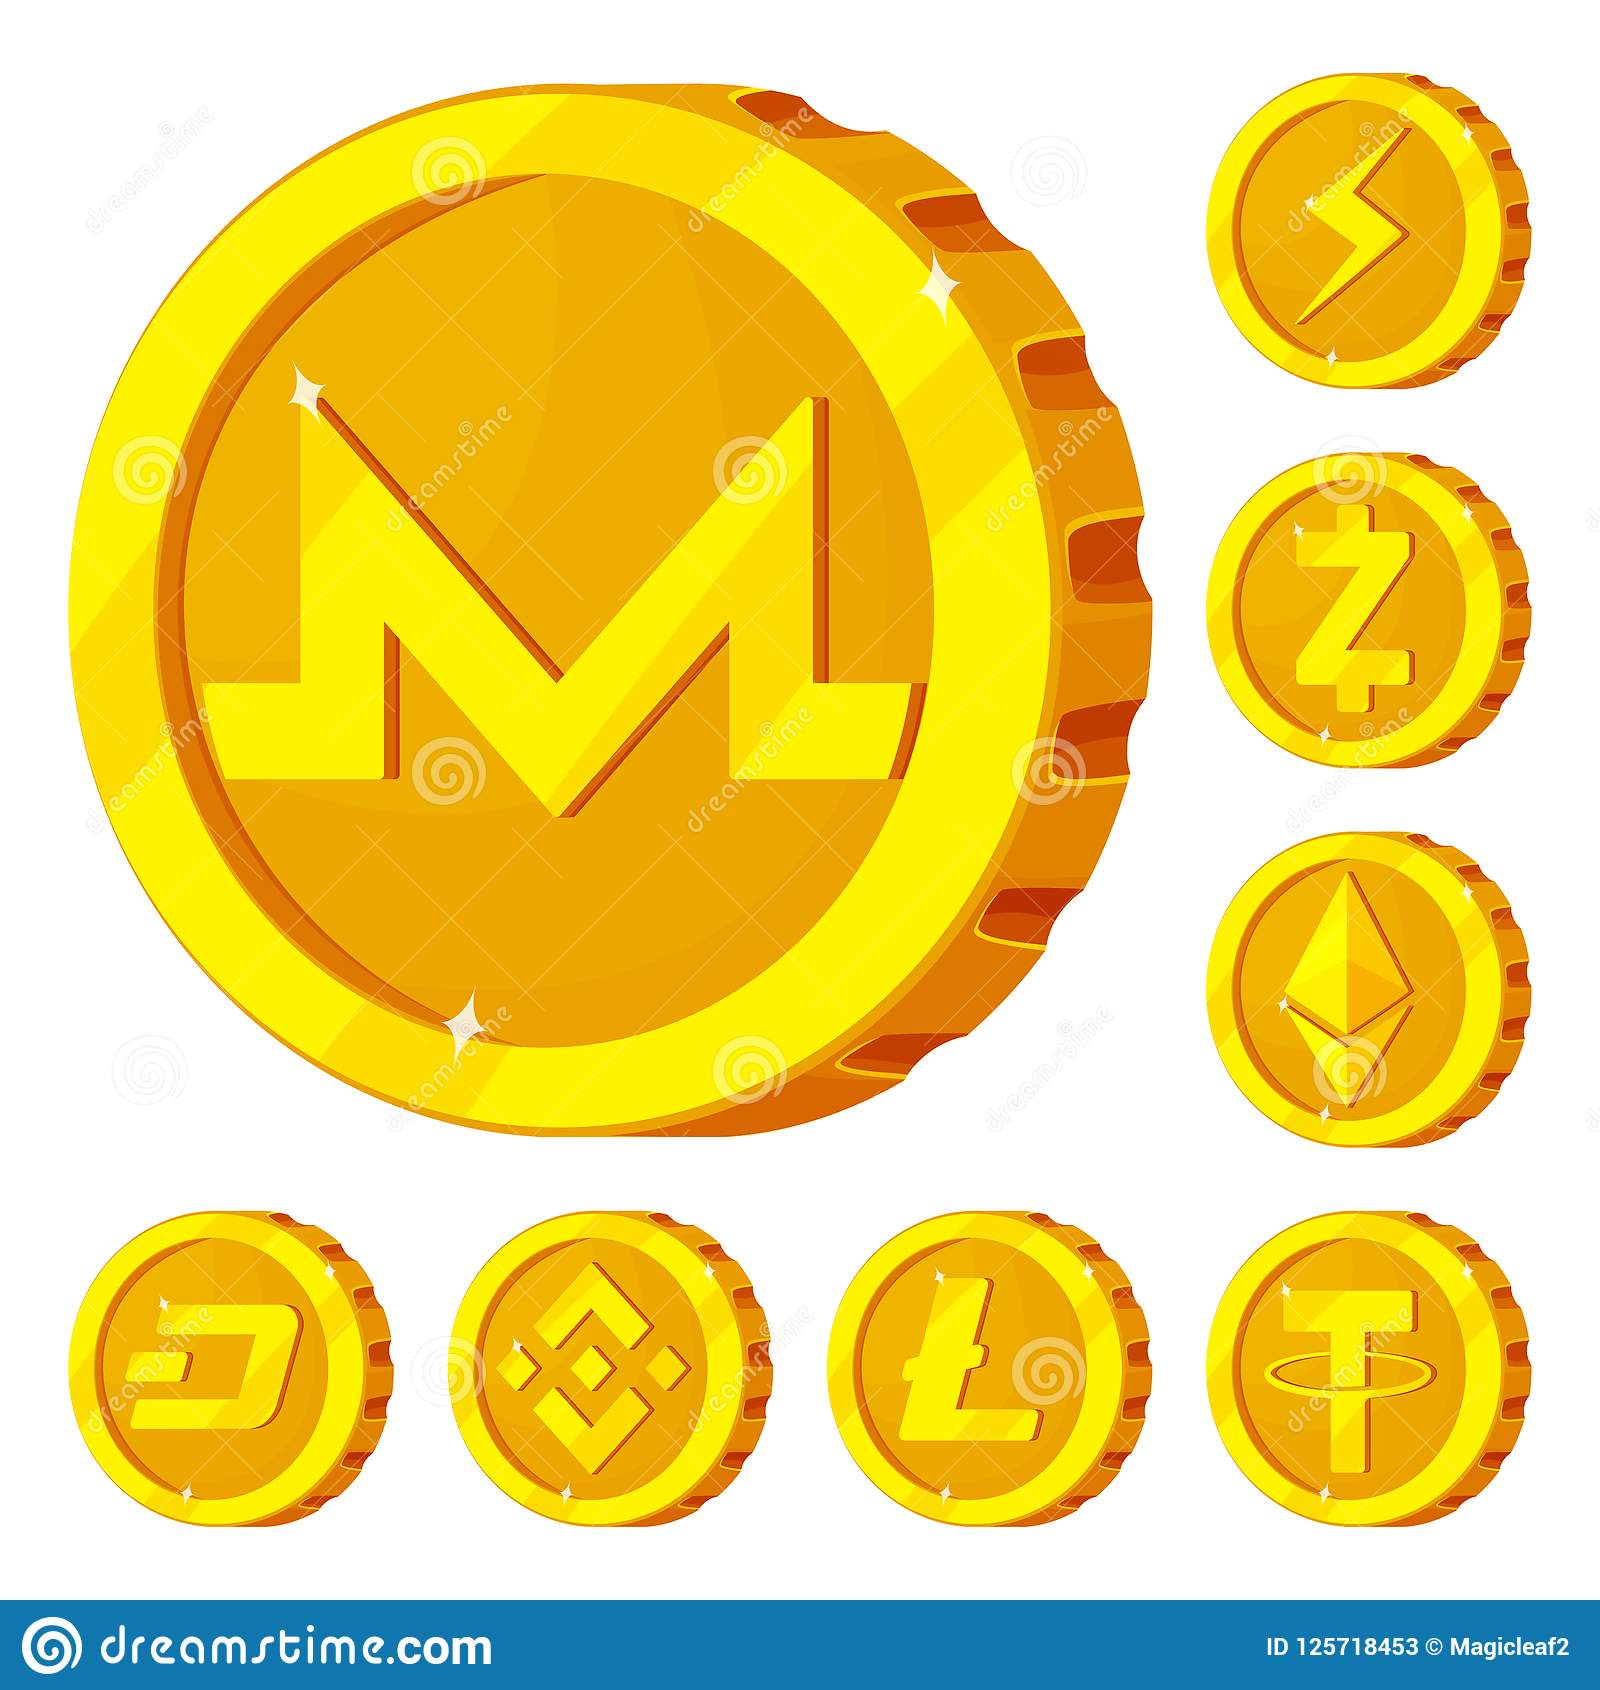 Vector Illustration Of Cryptocurrency And Coin Logo Collection Of